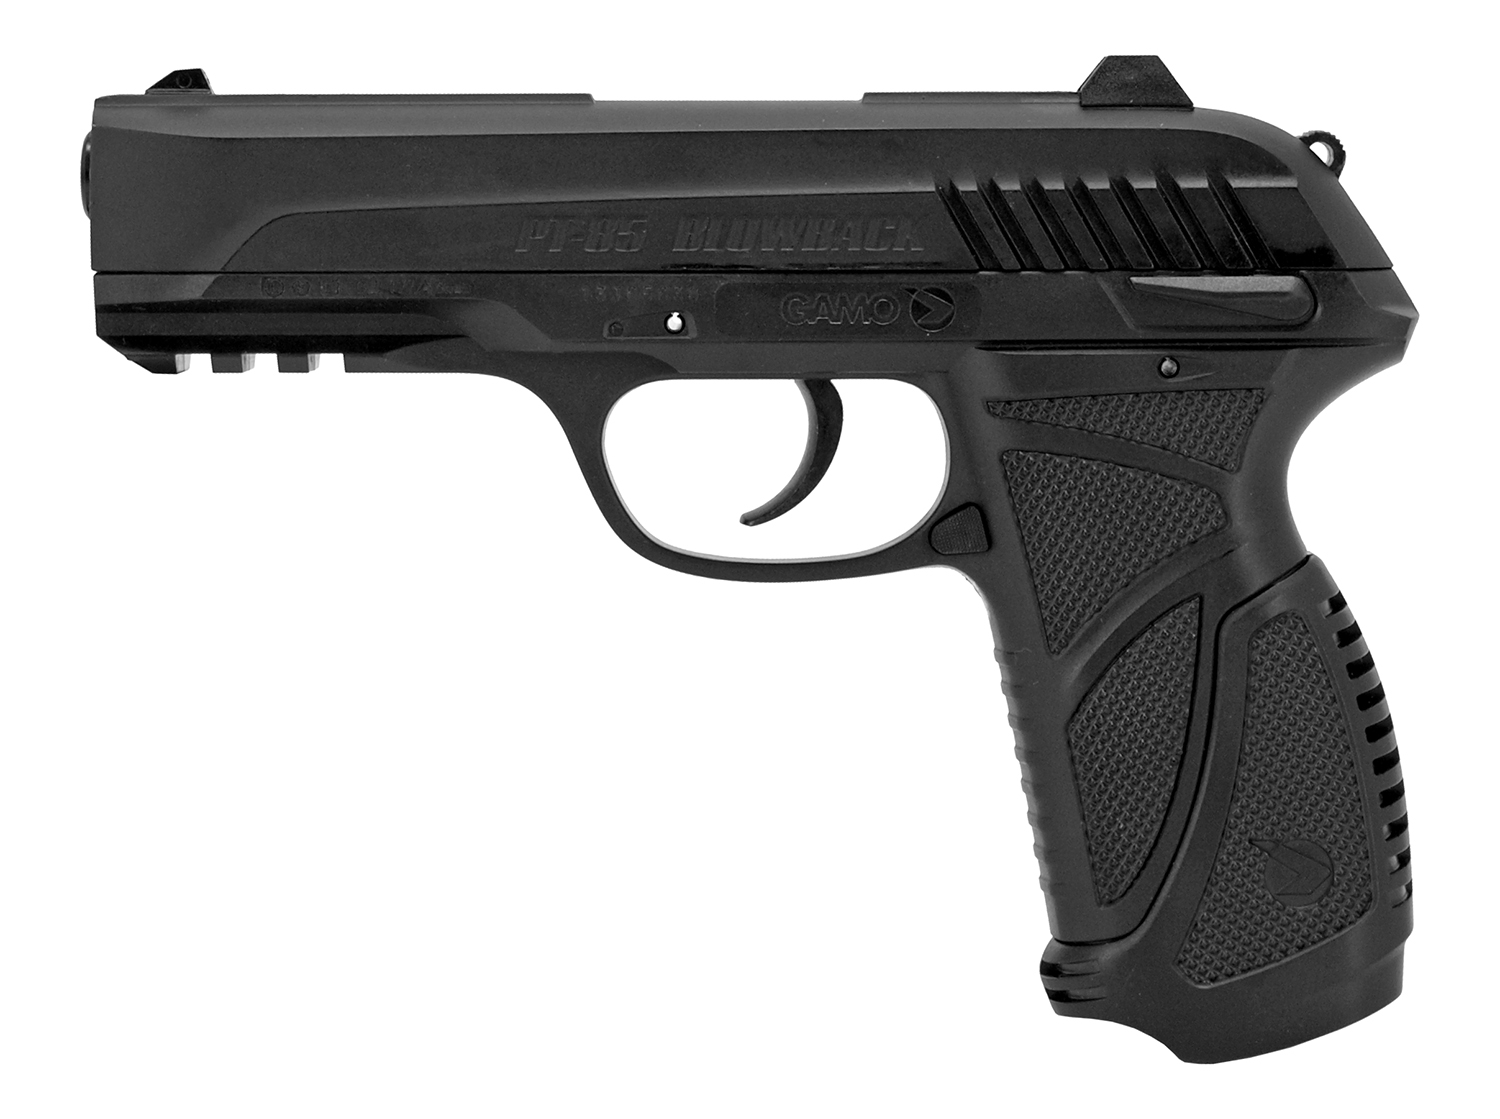 Gamo PT-85 Blowback .177 Cal. CO2 Pistol - Refurbished